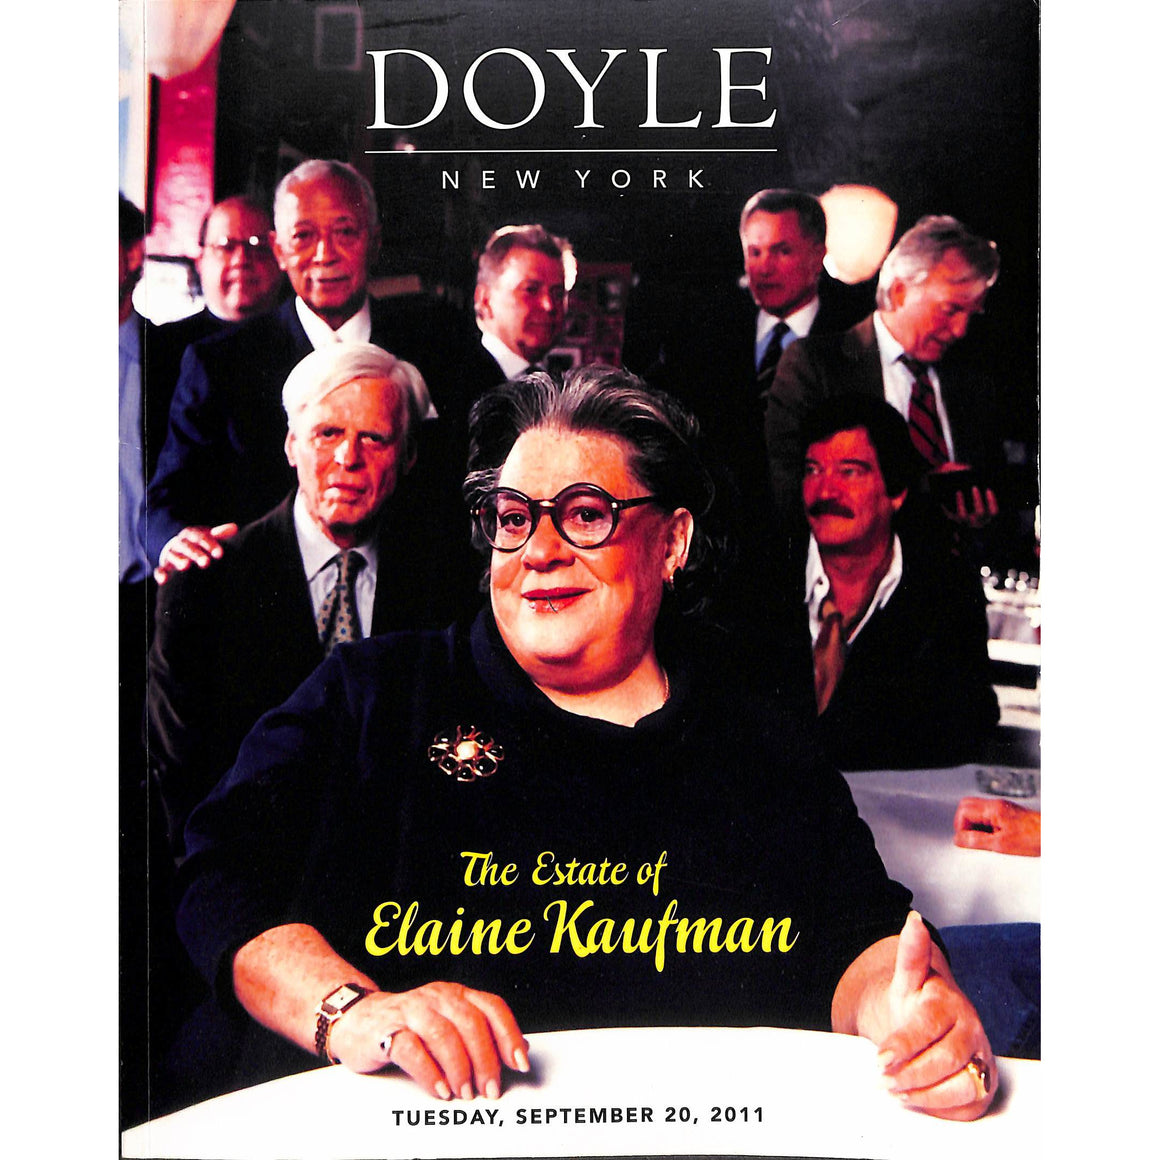 Doyle New York: The Estate Of Elaine Kaufman